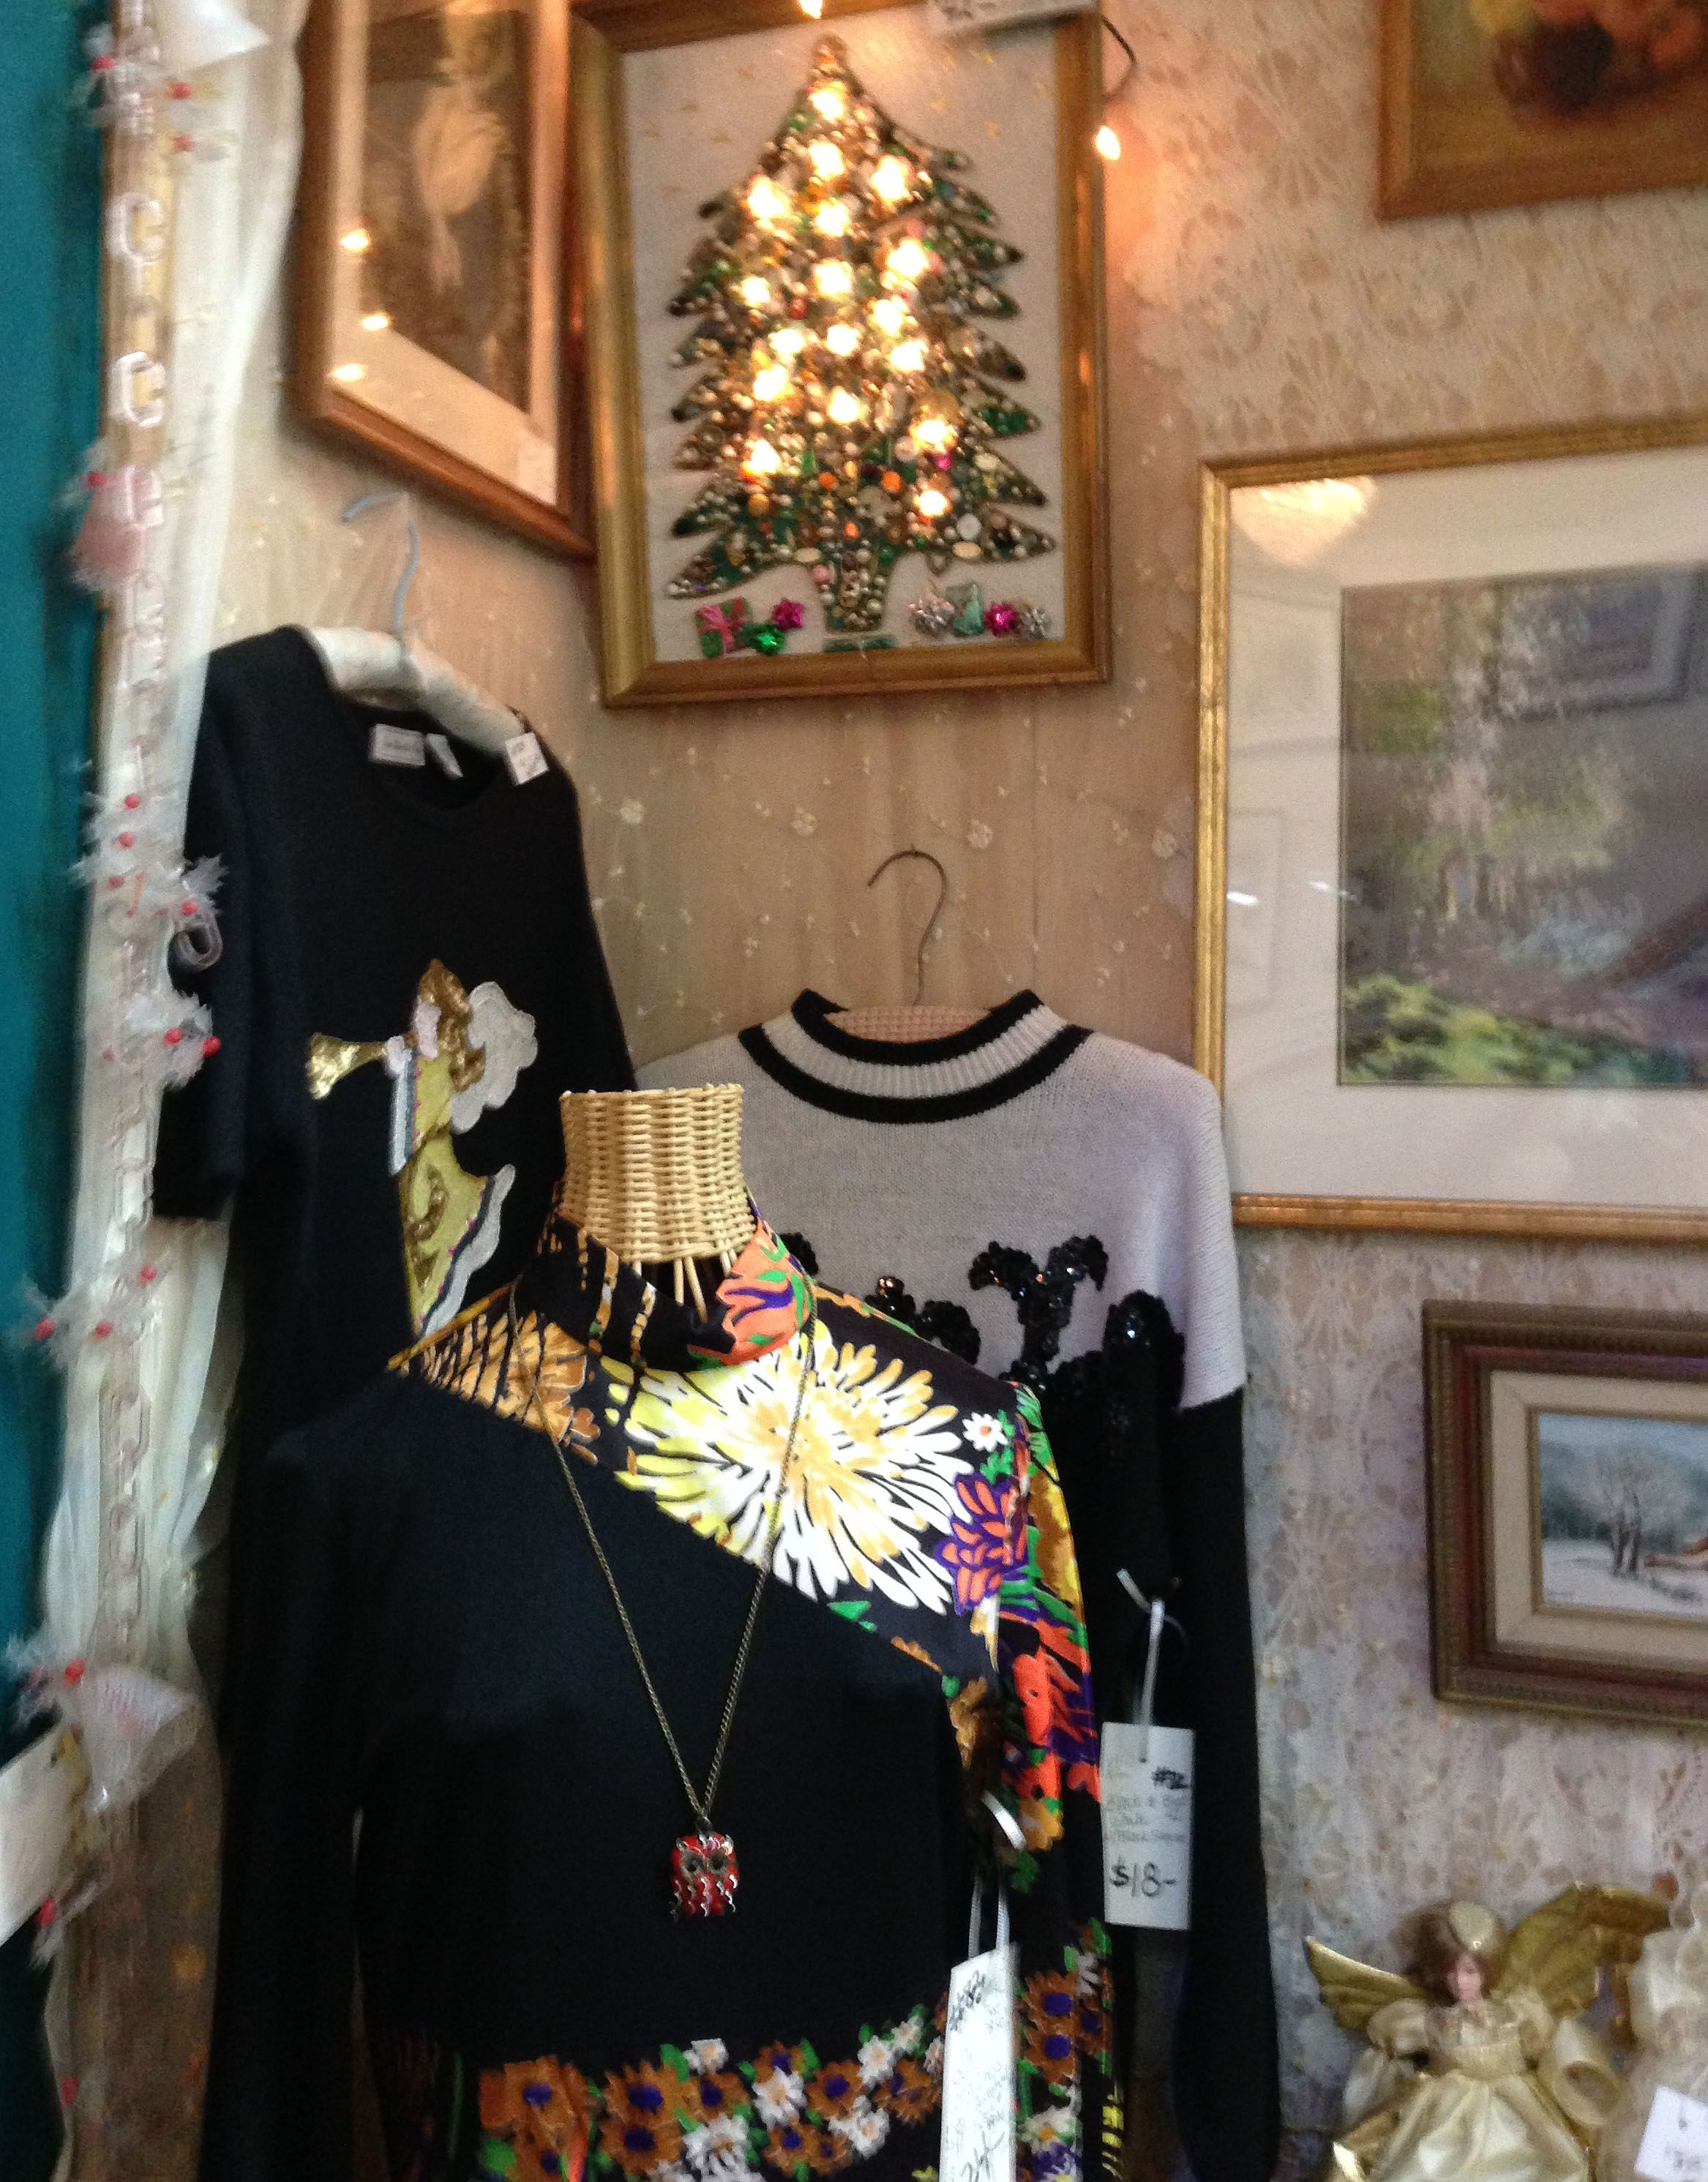 Small corner with long 60's Dress Asymmetrical design  Mission Galleria Riverside Calif 12-2014